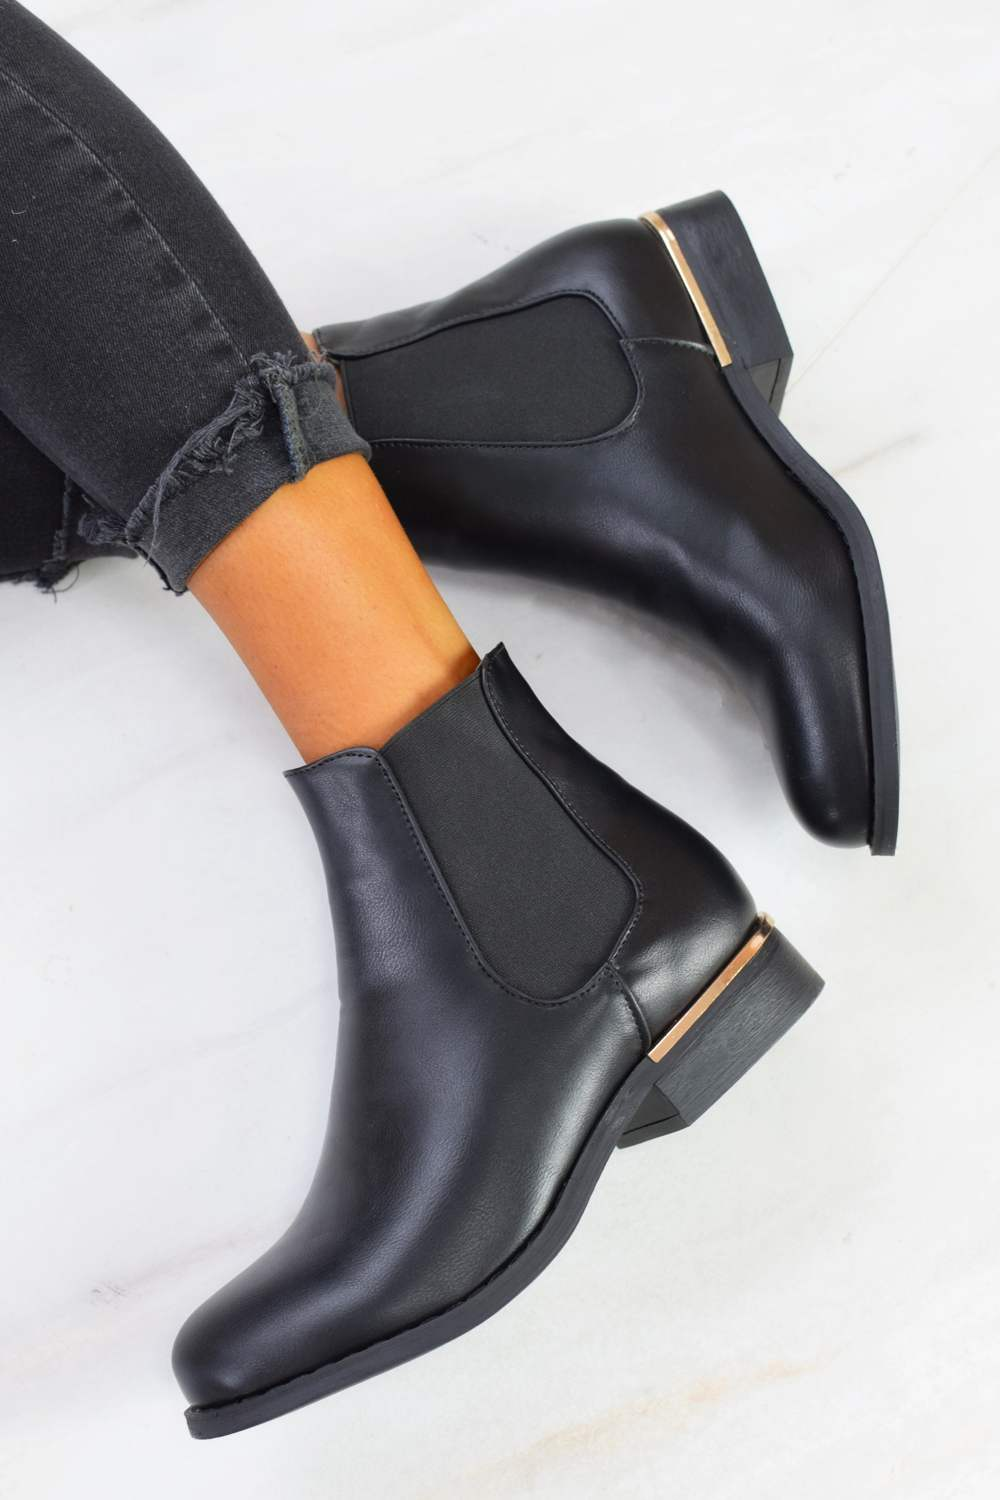 Gold Trim Flat Chelsea Ankle Boot - Black PU - 1